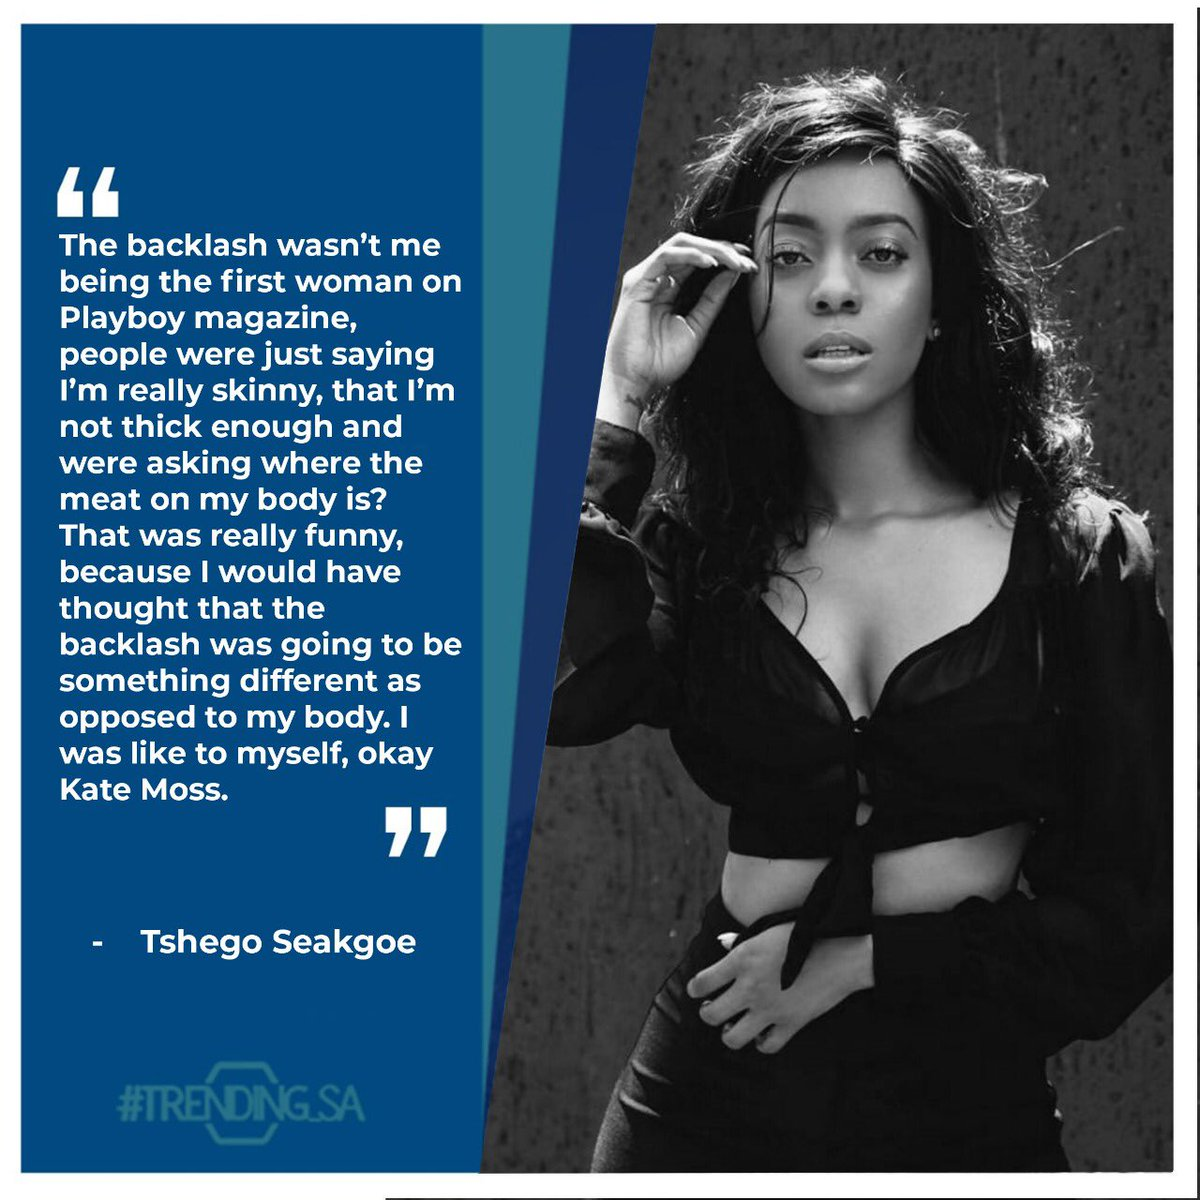 Model and Actress Tshego Seakgoe on the backlash she got when she was on the cover of Playboy. #tsaonline #tsaon3